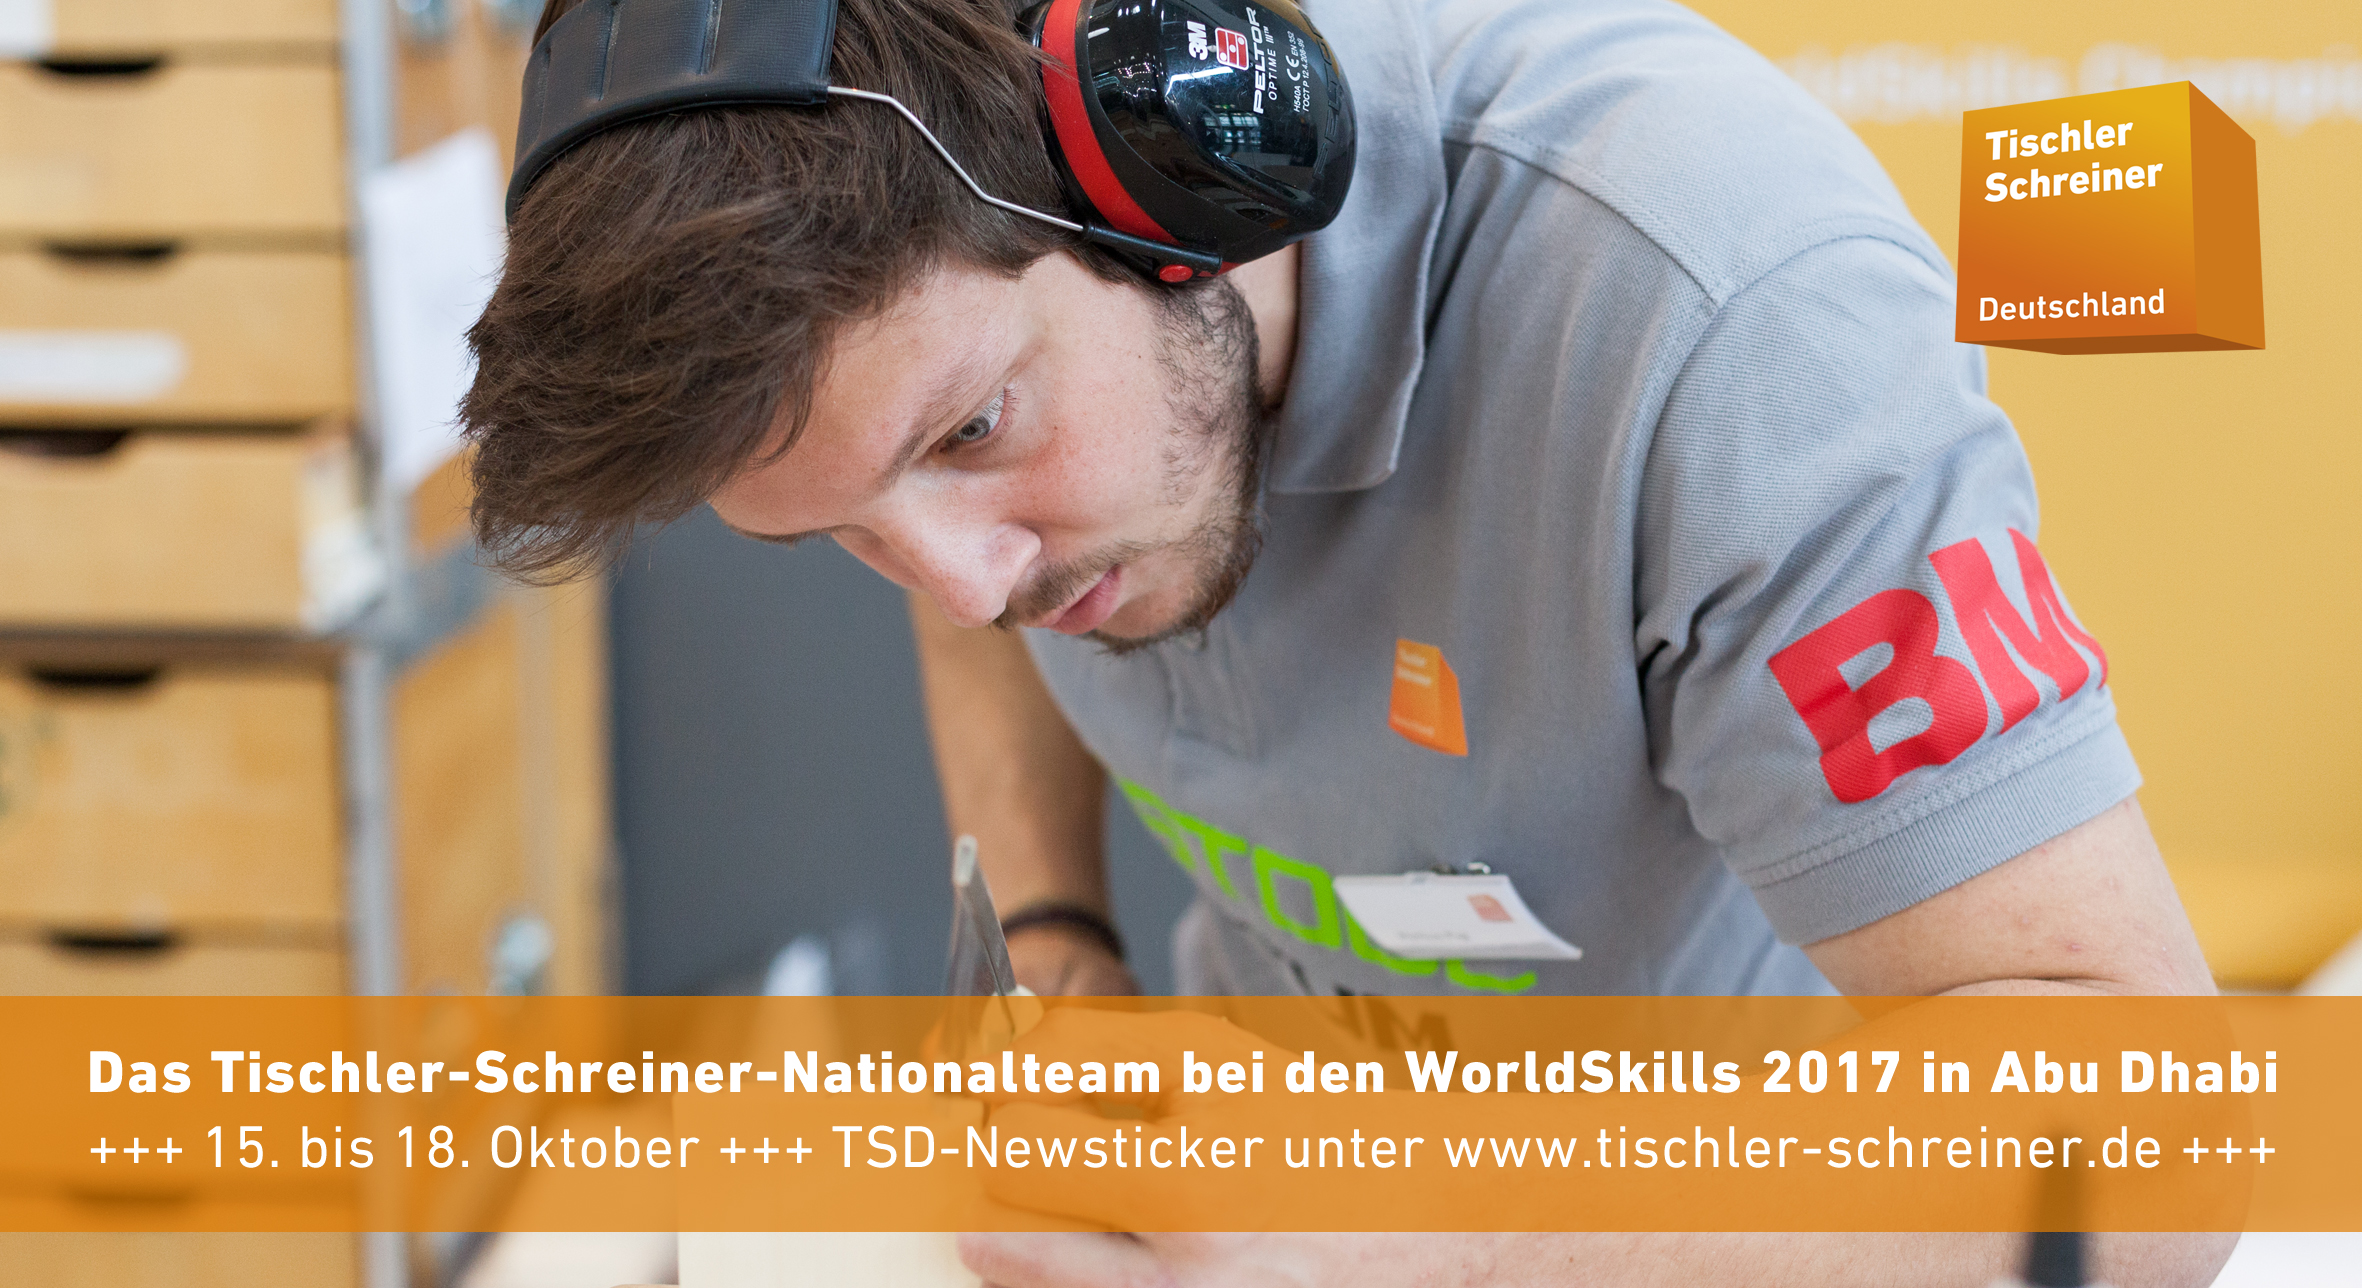 PM_TSD_09_2017_Worldskills_2017_1.jpg